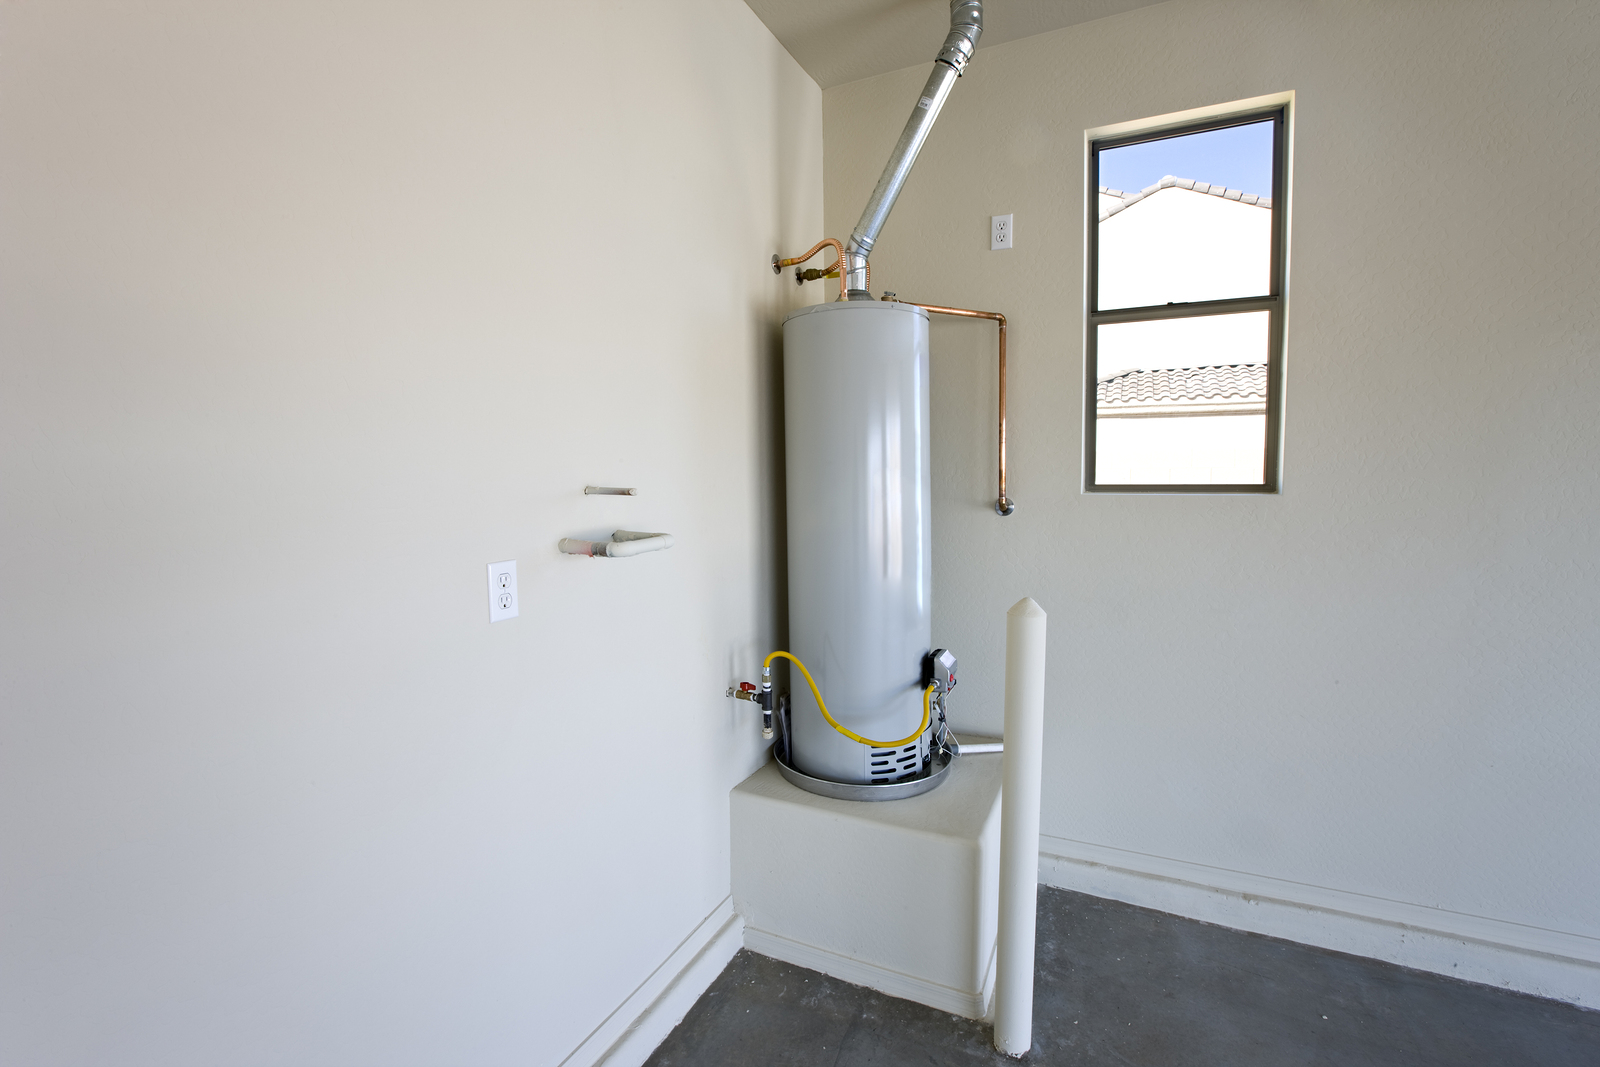 Pipecraft Plumbing Arvada Co Water Heater Service Re